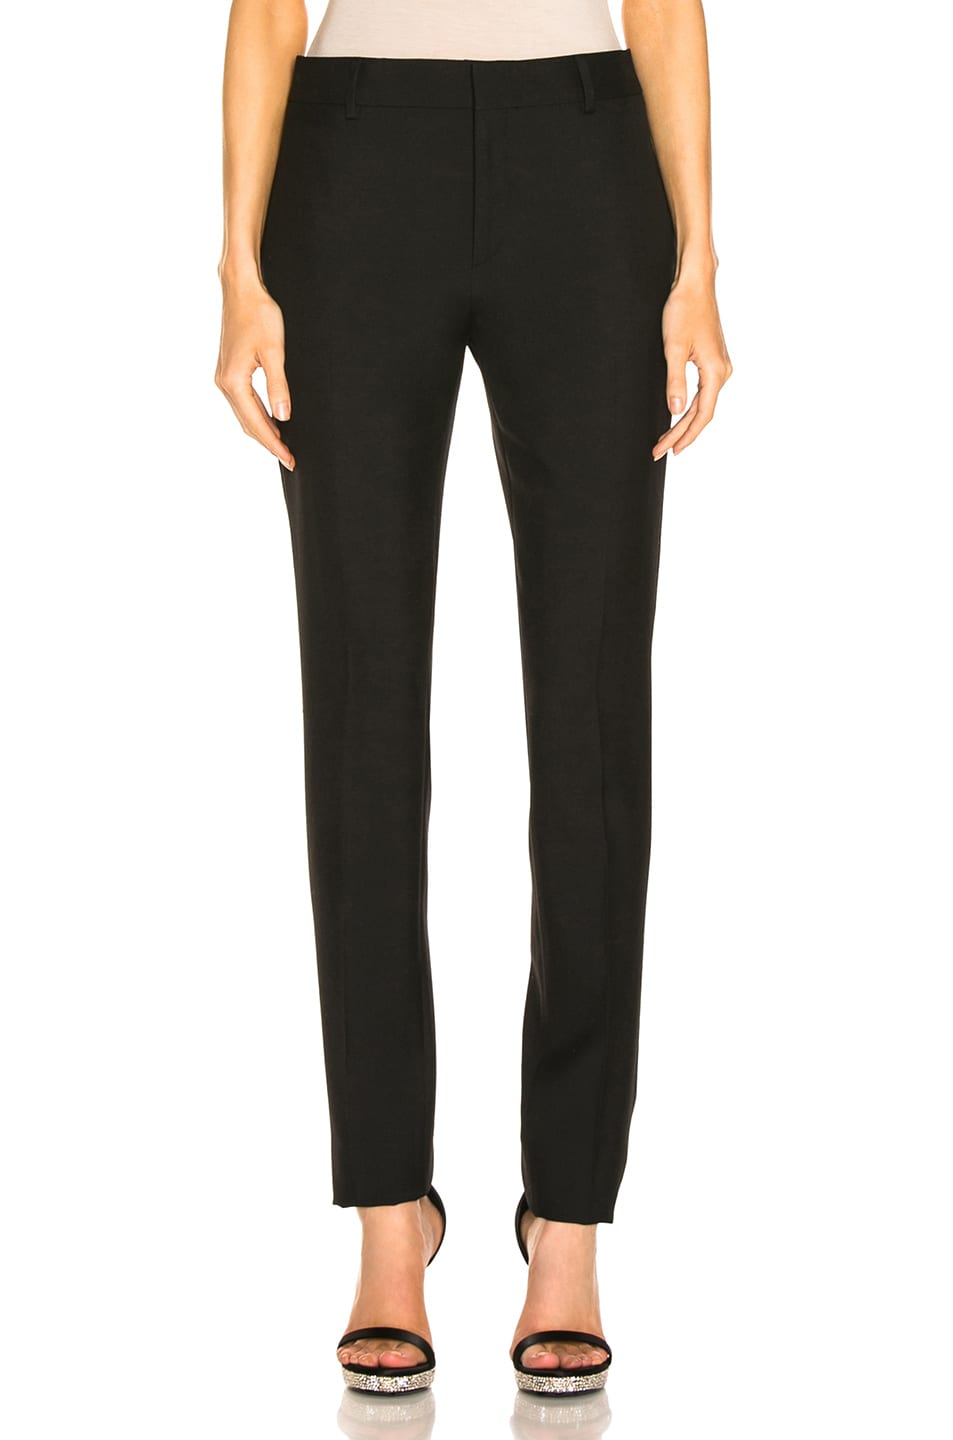 Image 1 of Saint Laurent High Waist Tailored Pant in Black